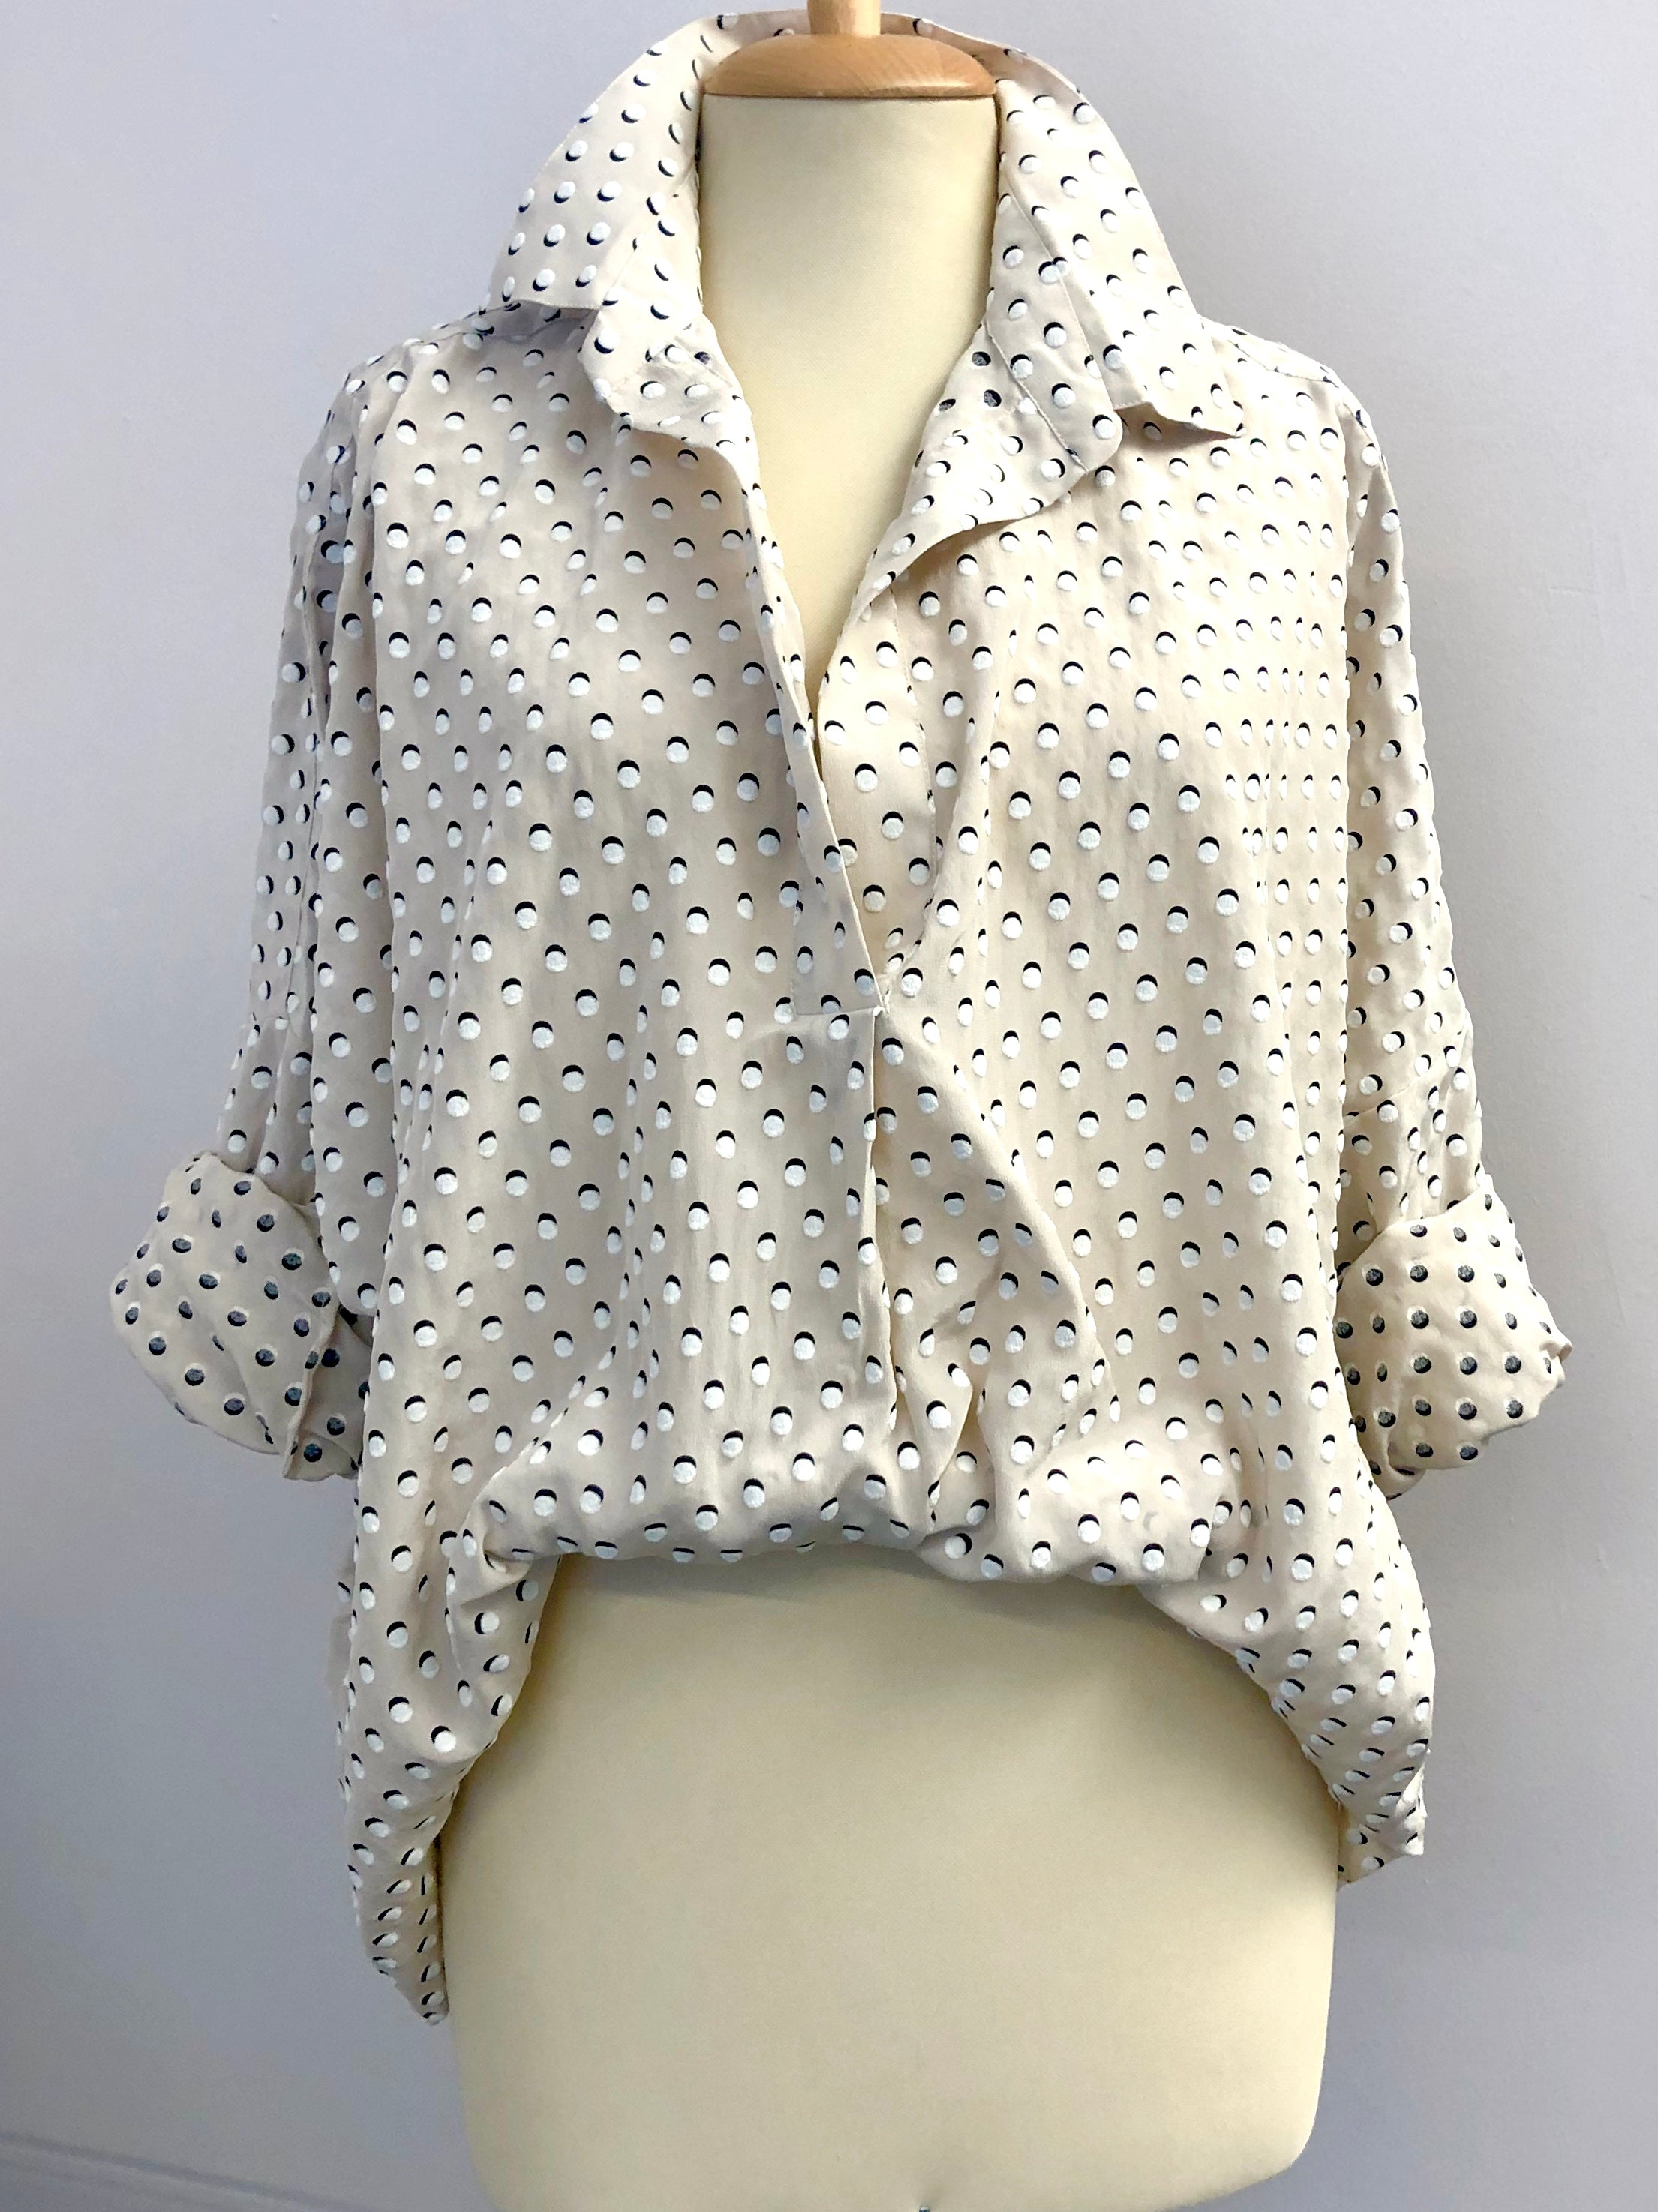 Silk Blouse from Como Italy Camiccia in Seta da Como